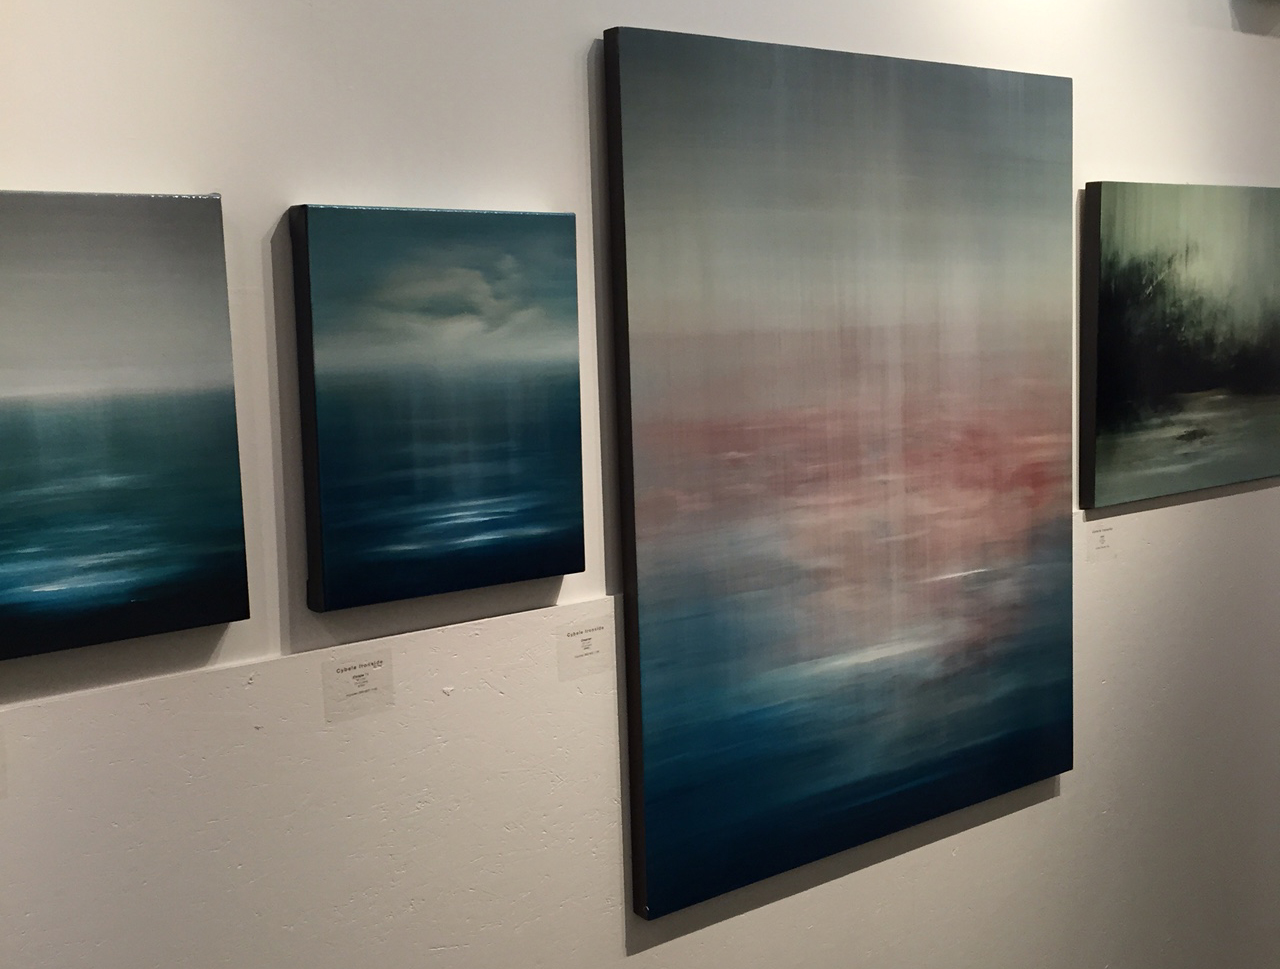 Cybele Ironside was just down the hall. Stunning landscapeabstracts.